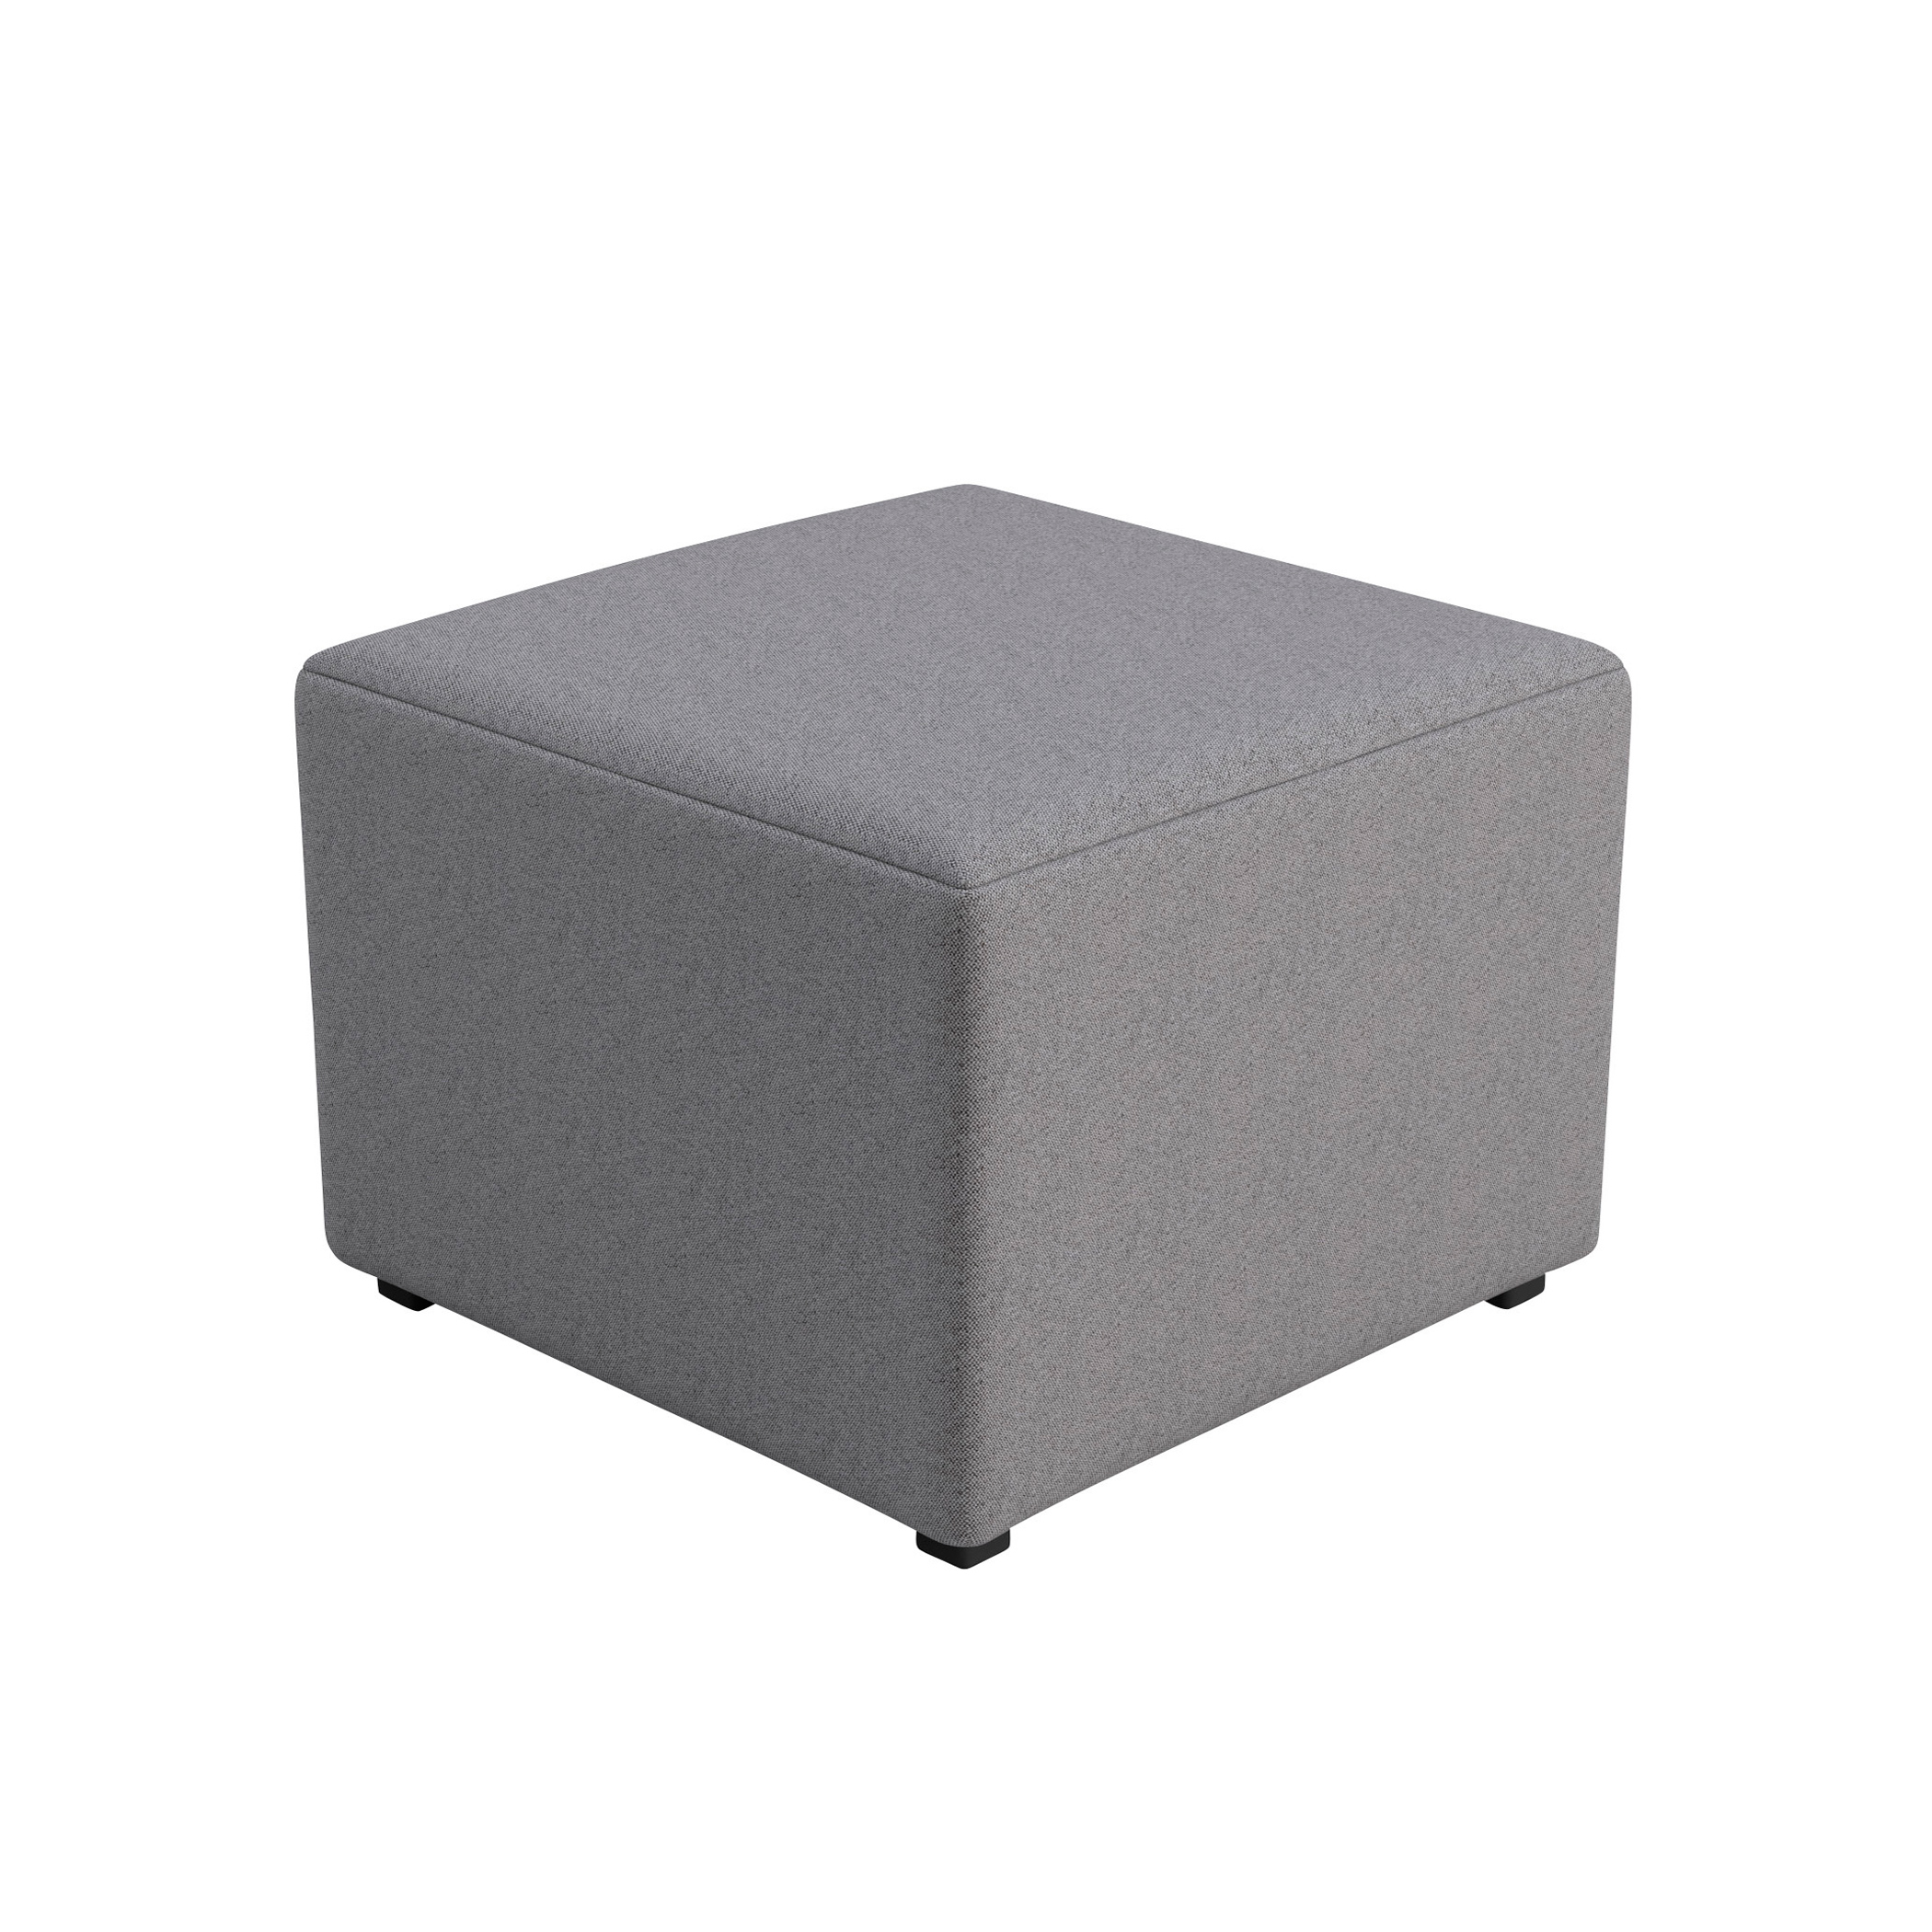 charleston philbee interiors ottoman leather ottomans canvas online polo collections square